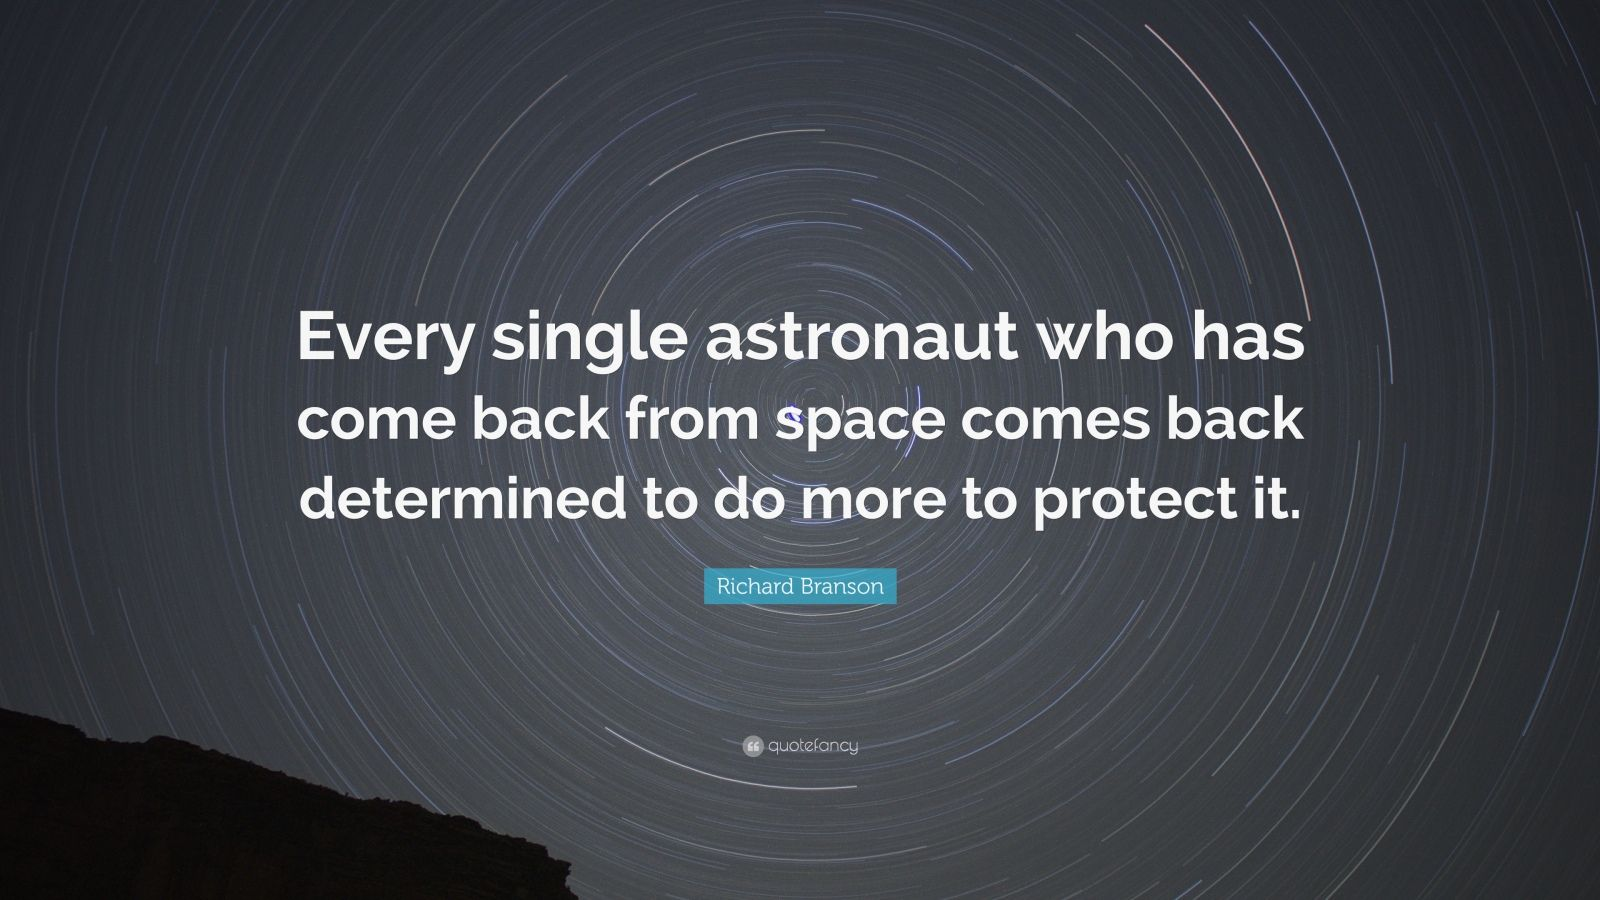 """Richard Branson Quote: """"Every single astronaut who has come back from space comes back determined to do more to protect it."""""""